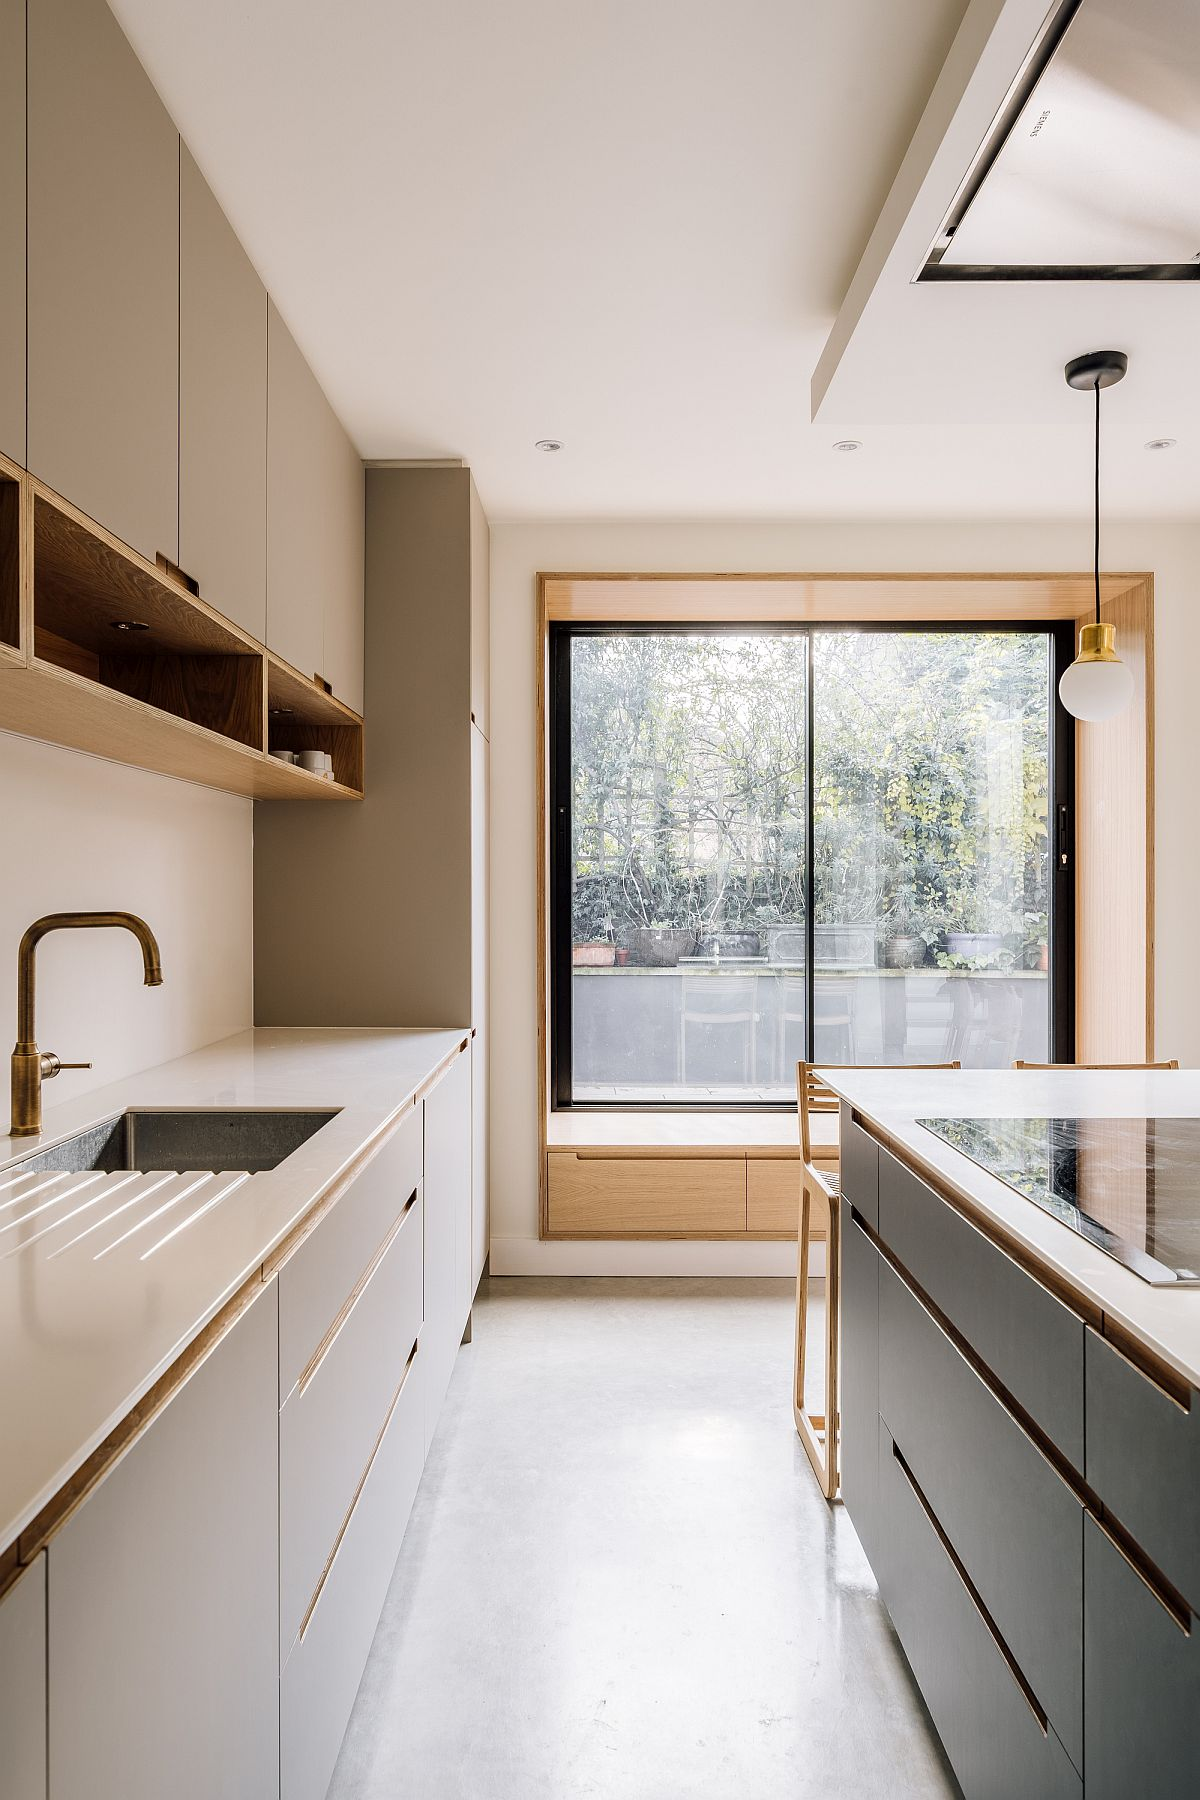 Custom oak window of the rear extension brings light into the modern kitchen